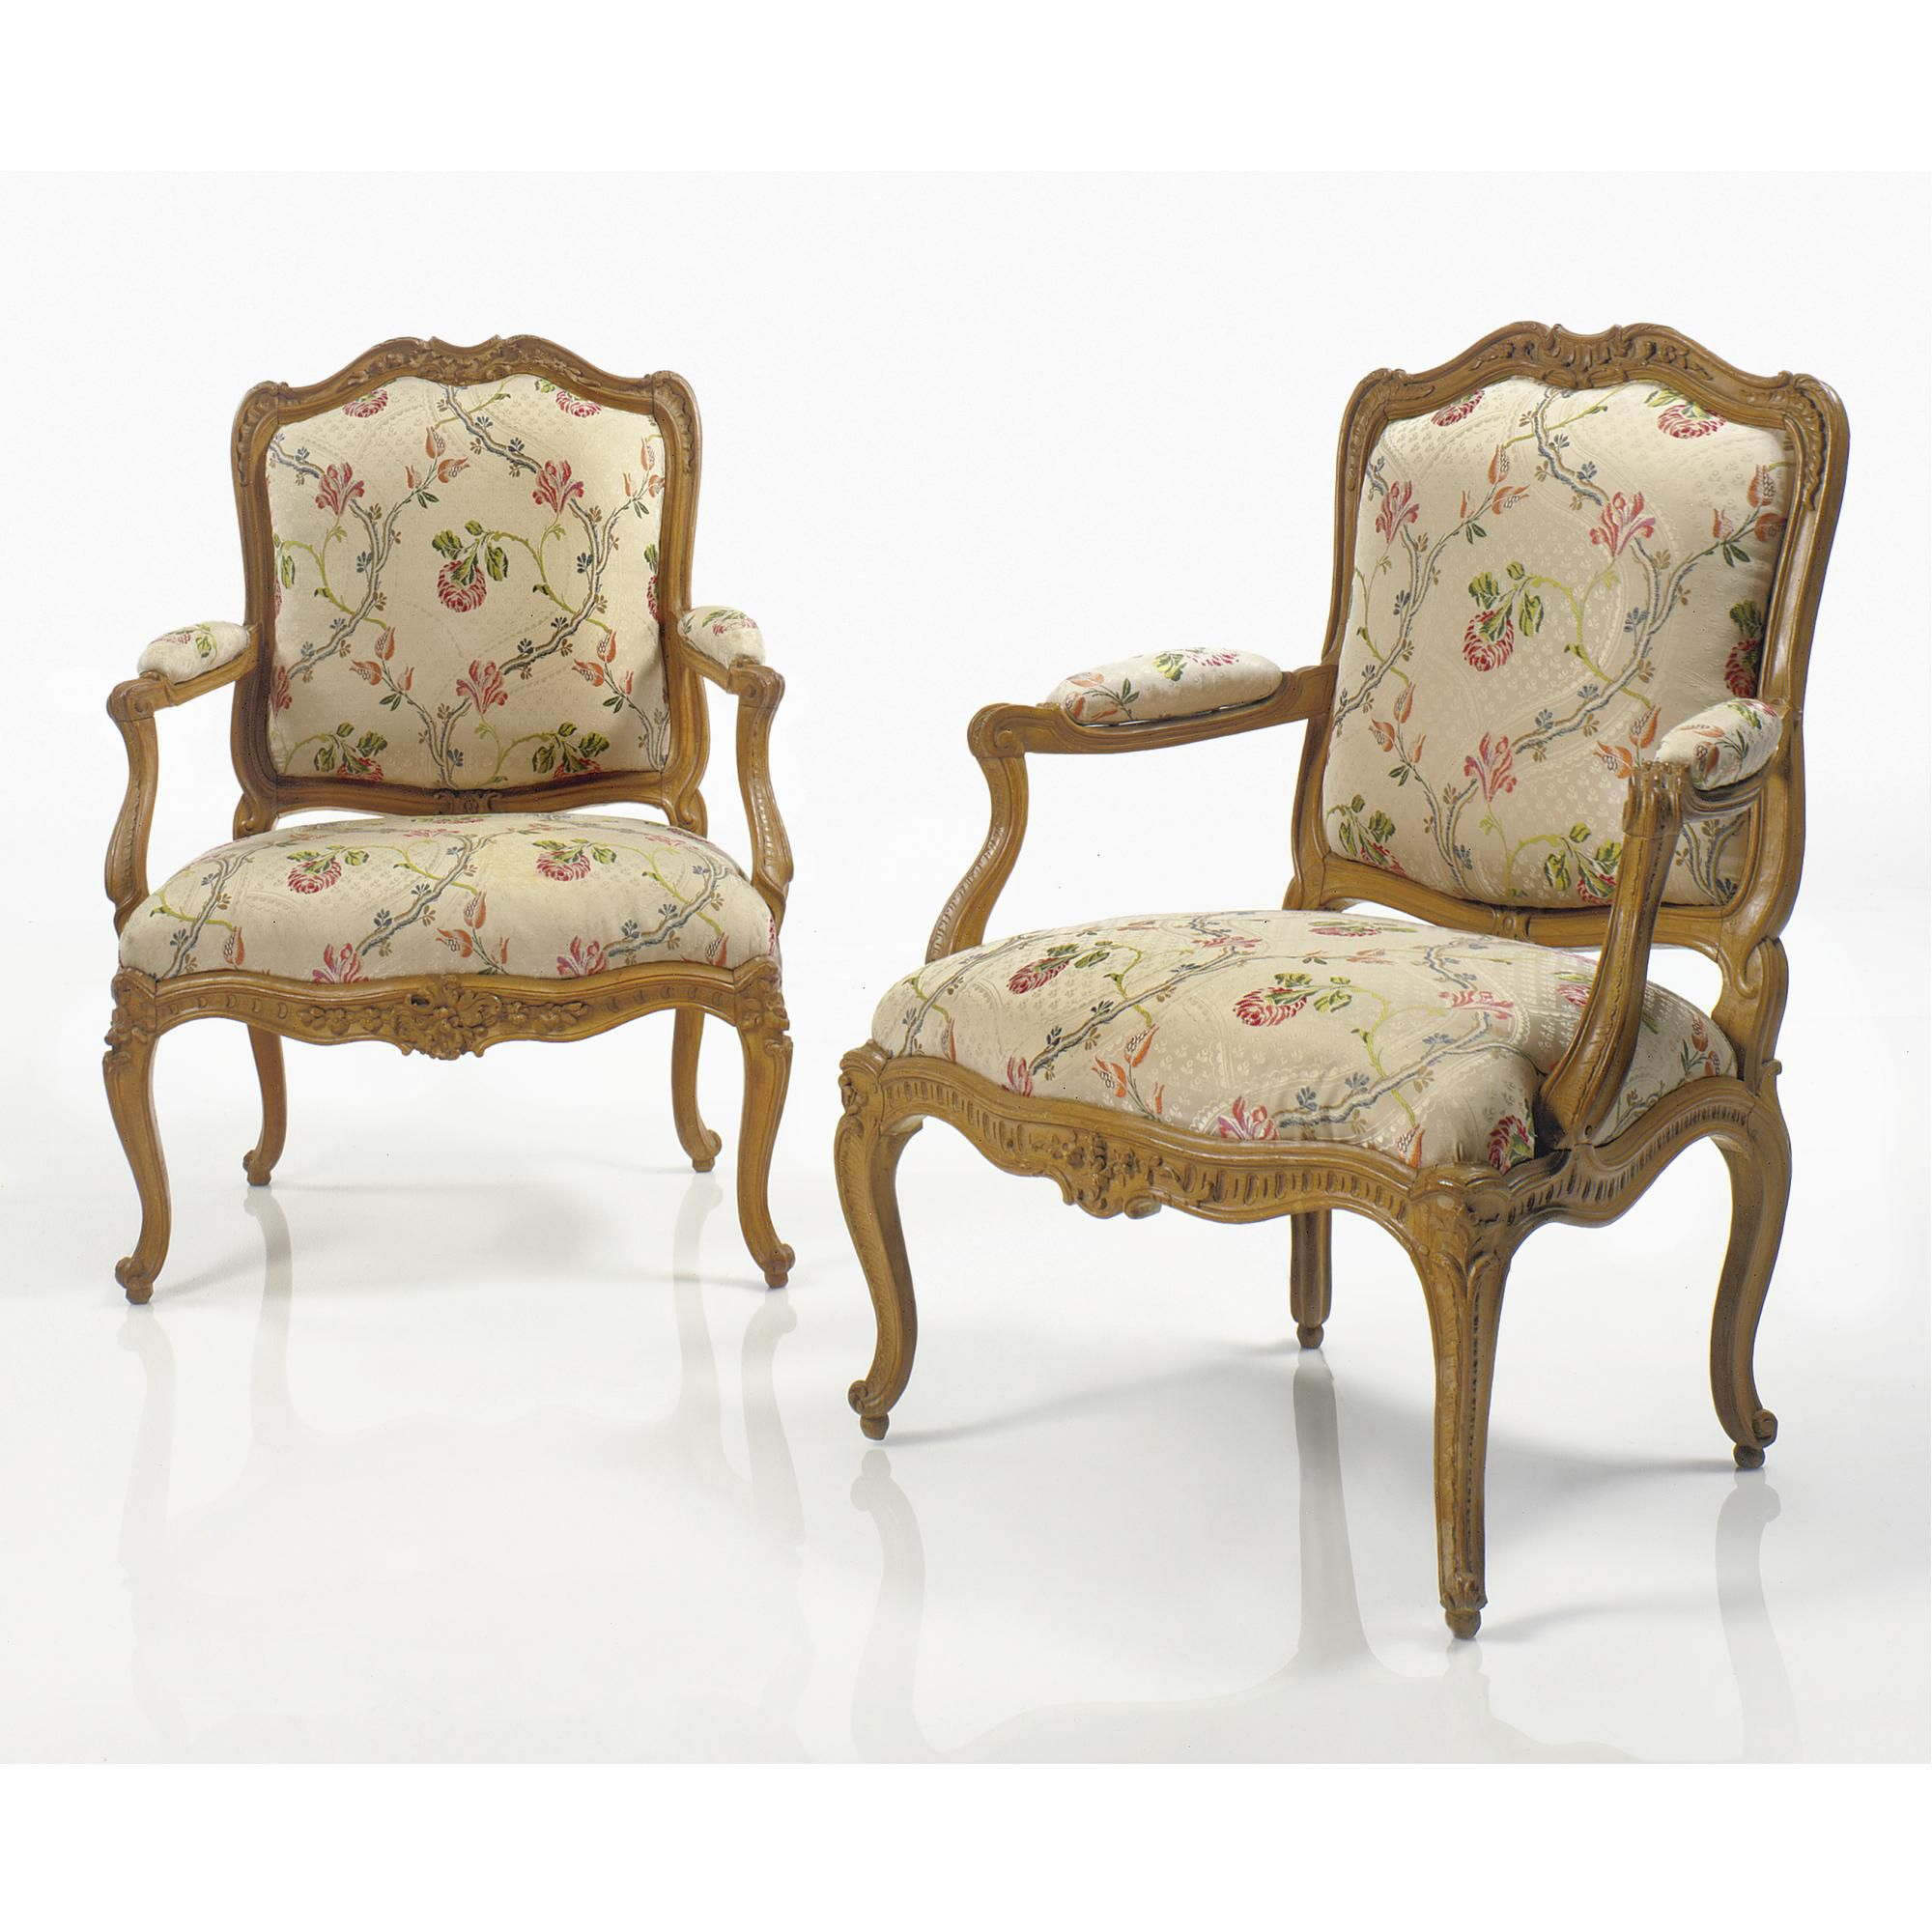 c1750 A fine pair of Louis XV carved beechwood fauteuils à